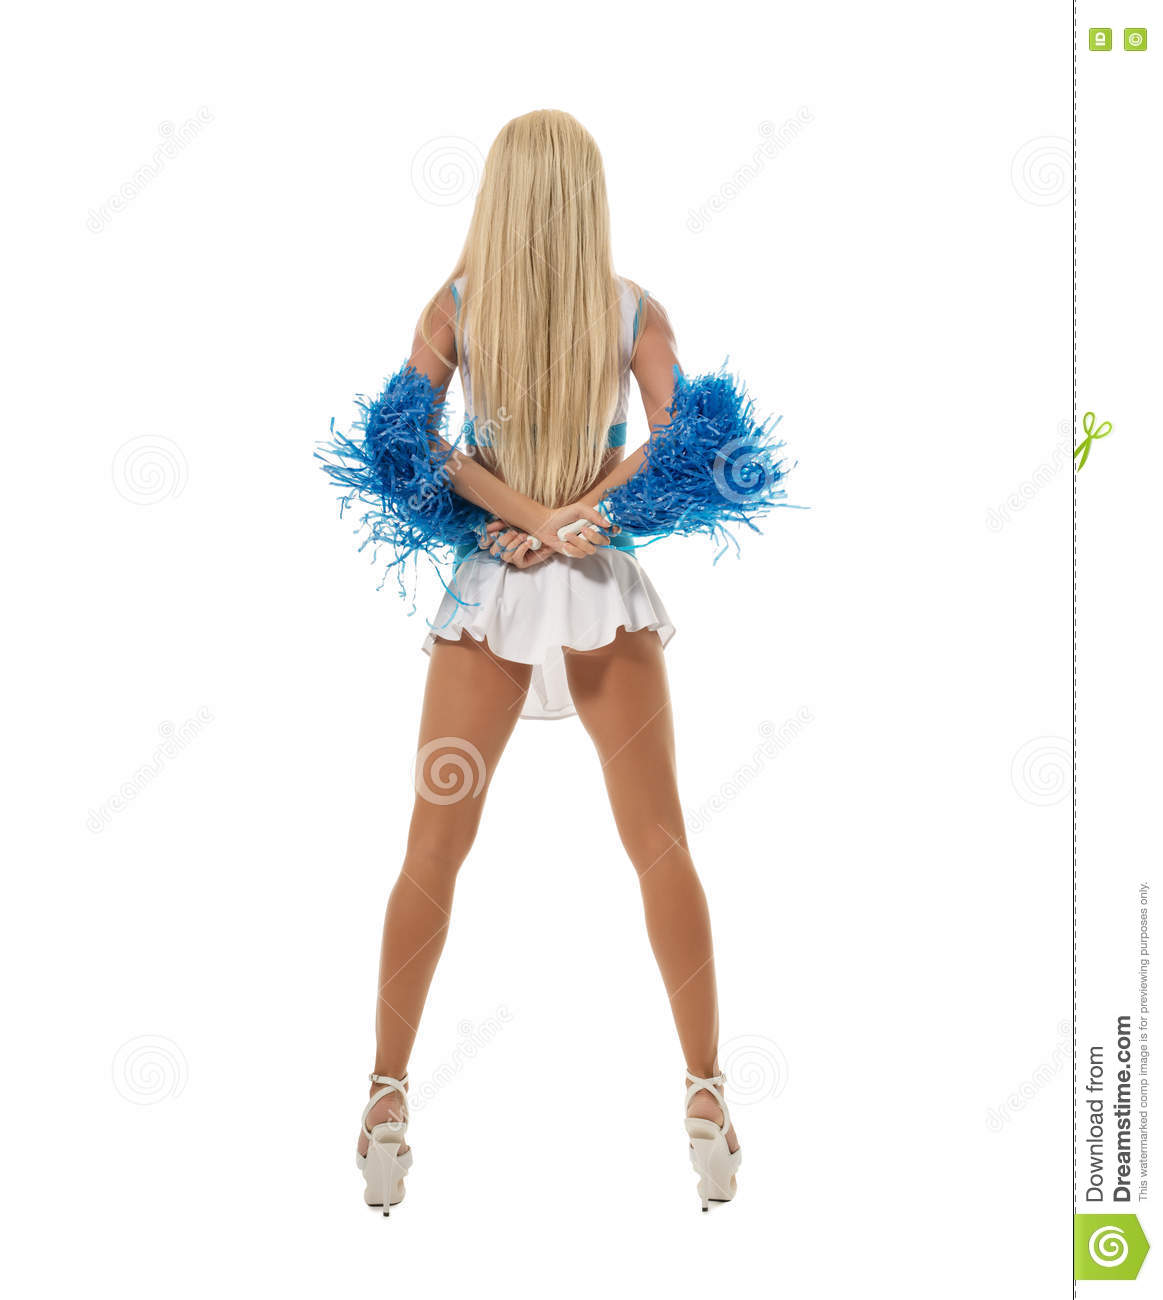 Back View Of Slim Leggy Blonde Posing With Pompons Stock